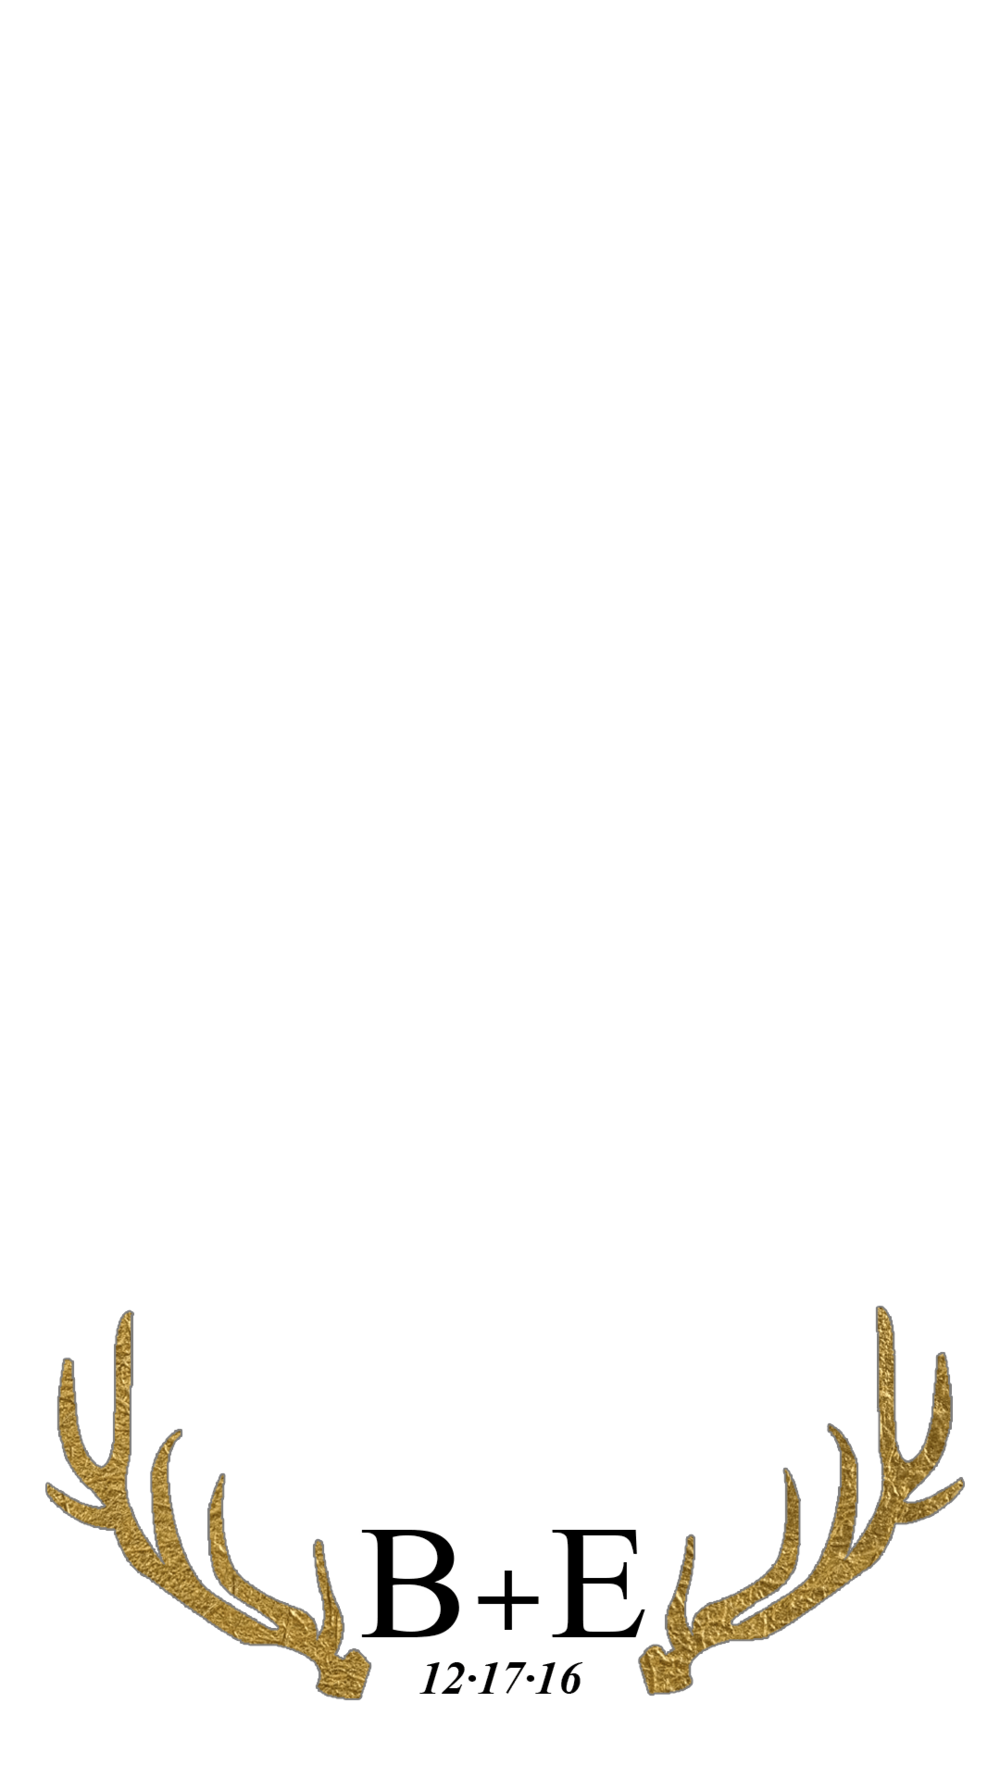 Southern Wedding Snapchat filter with Antlers